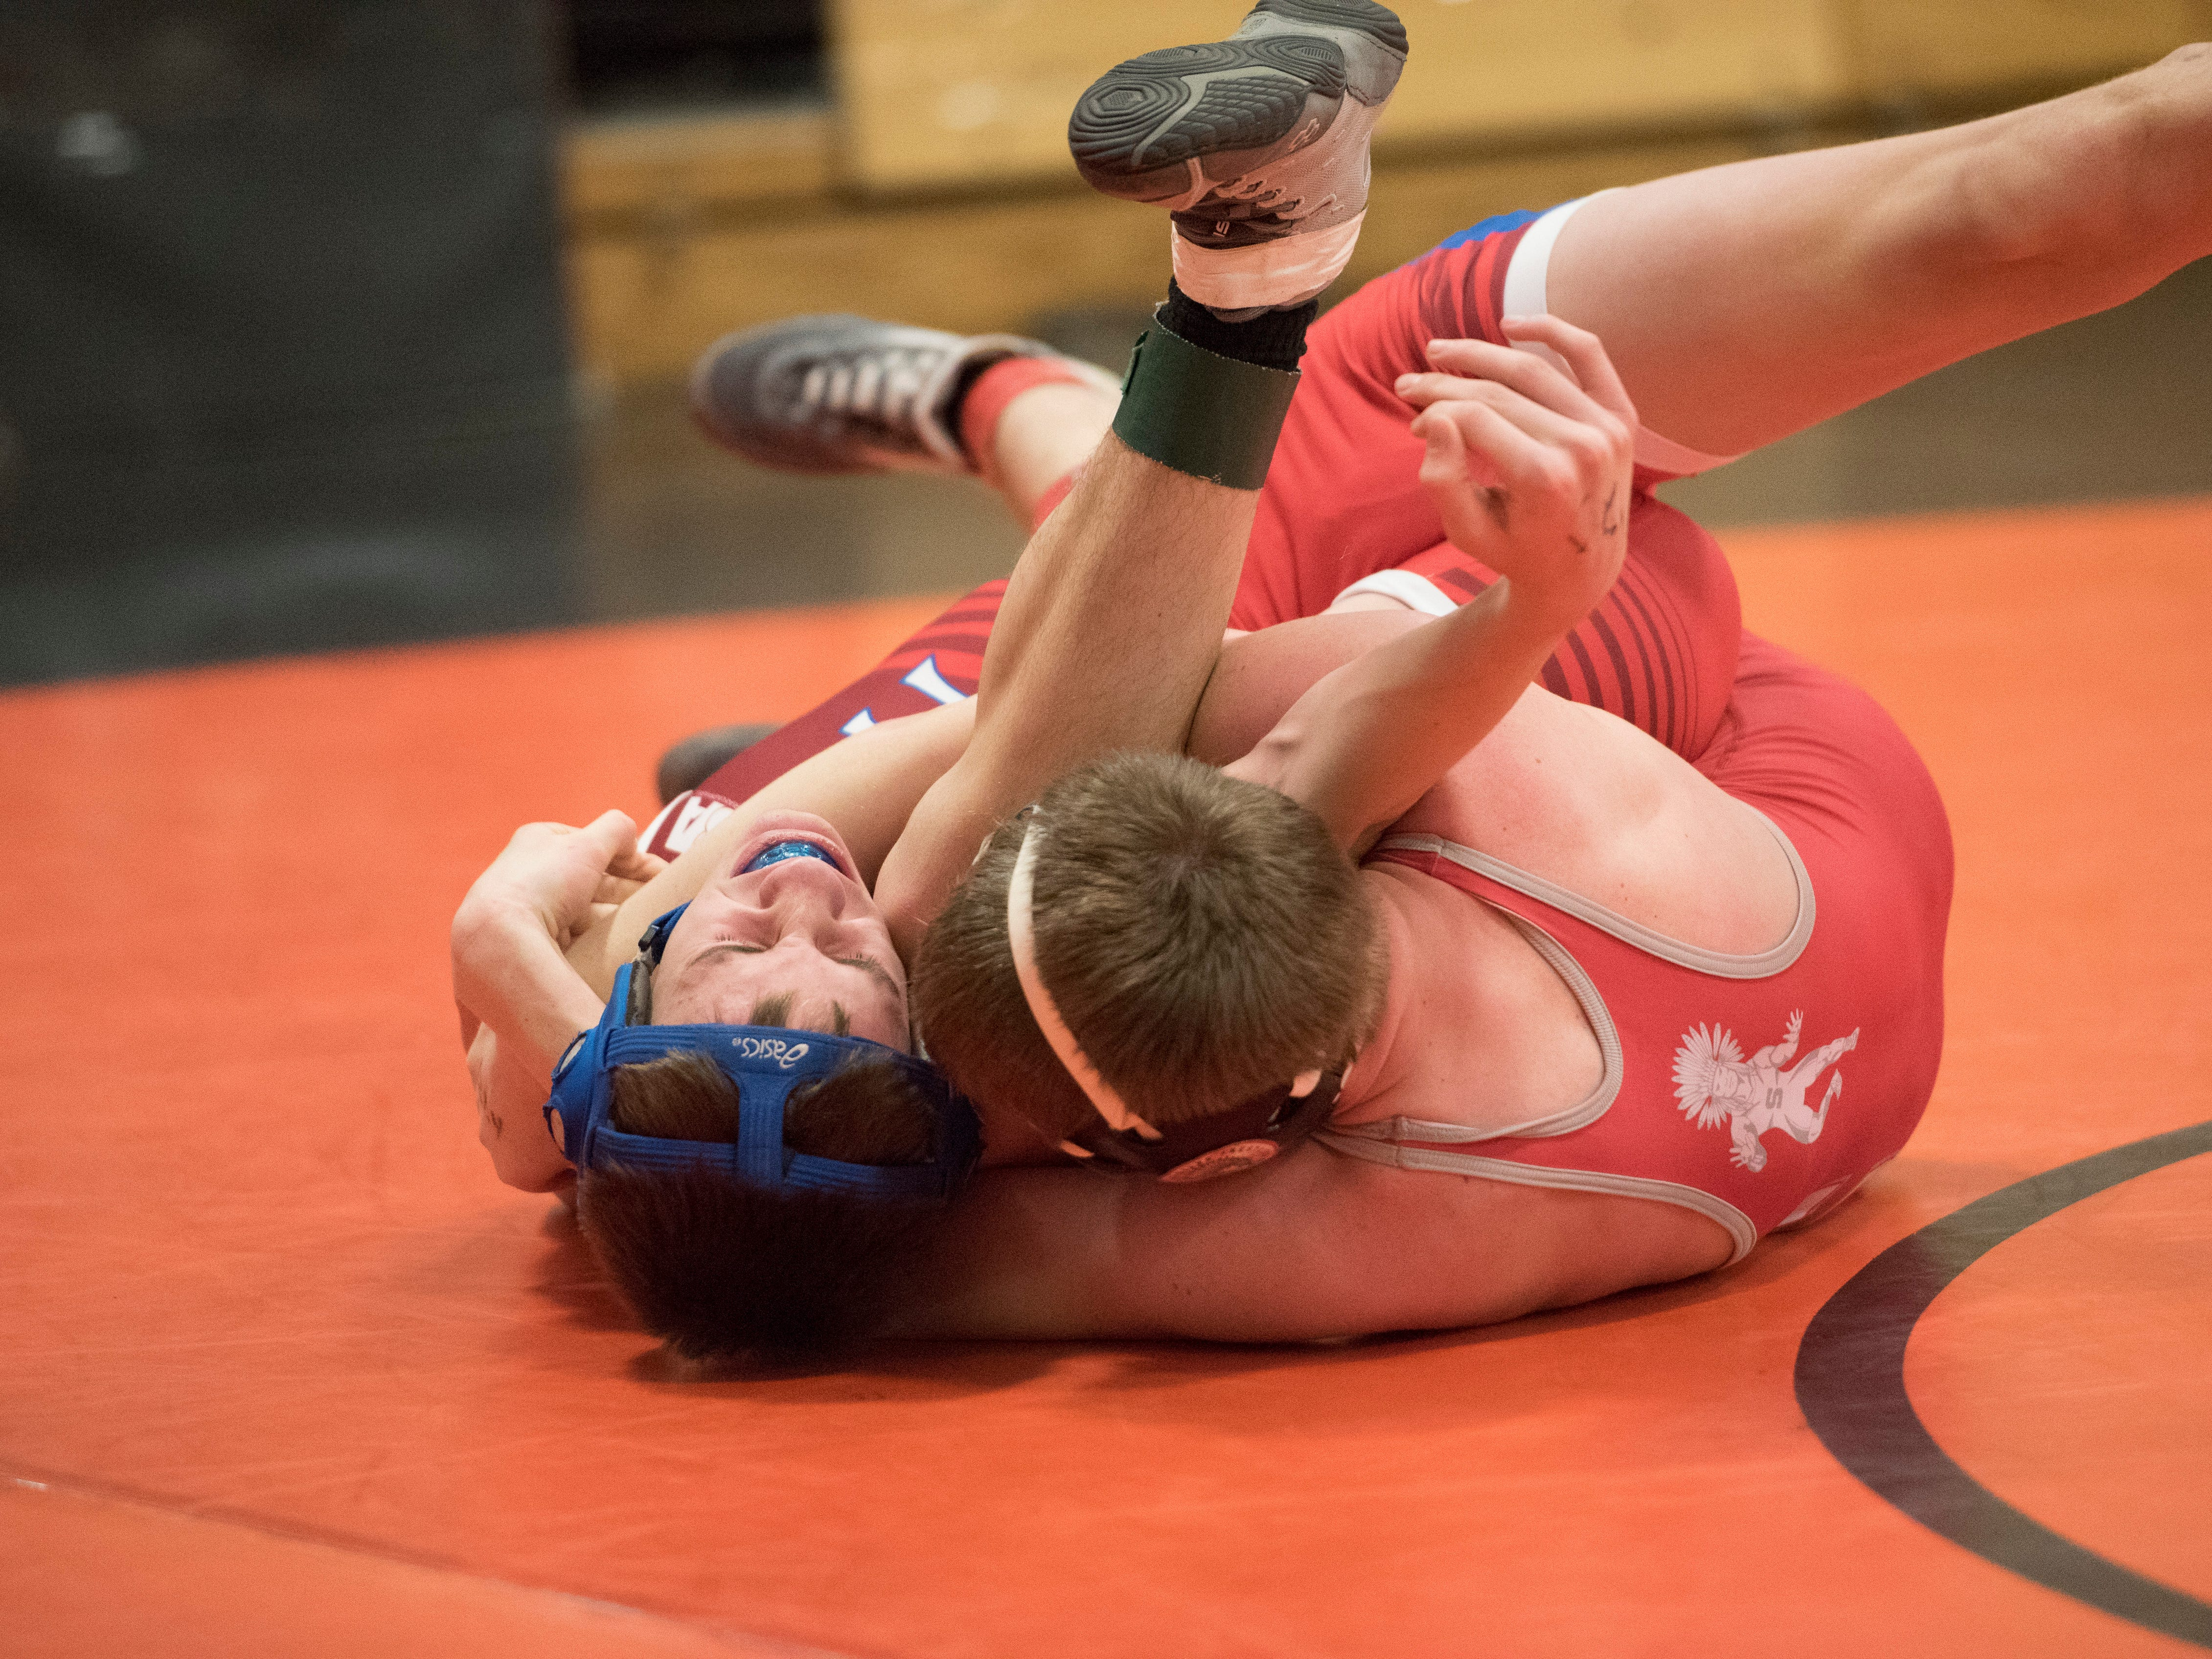 Zane Trace High School competed  at the Beavercreek Classic with senior Jordan Hoselton taking second in the 132-pound weight class and Austin Carroll and Jade Rittinger taking third in their classes.